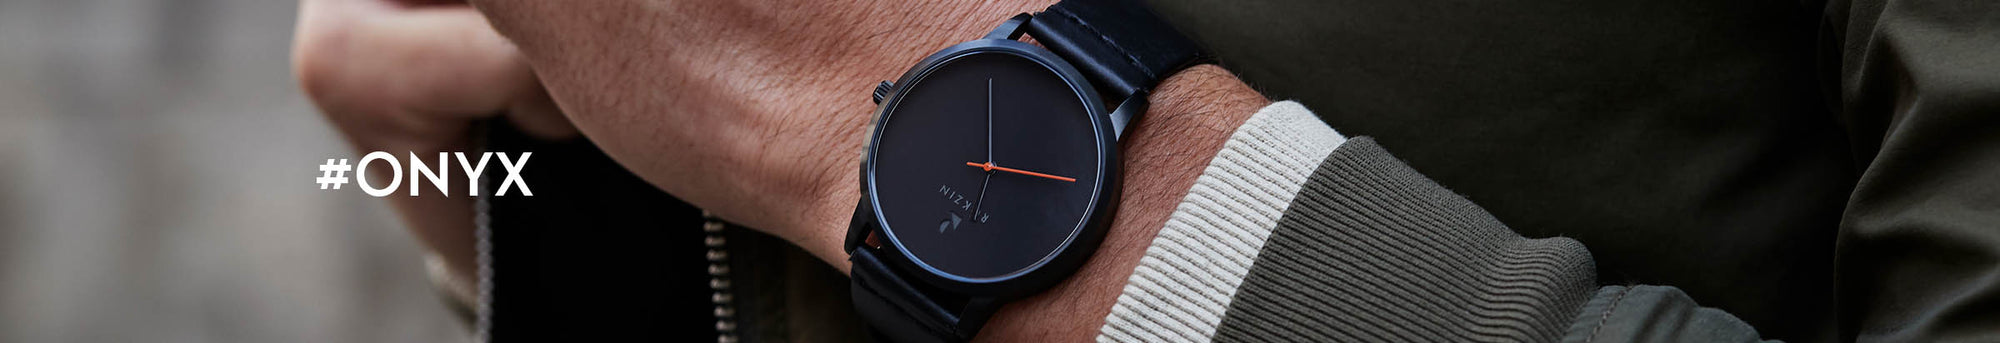 Rokzin Onyx Watch